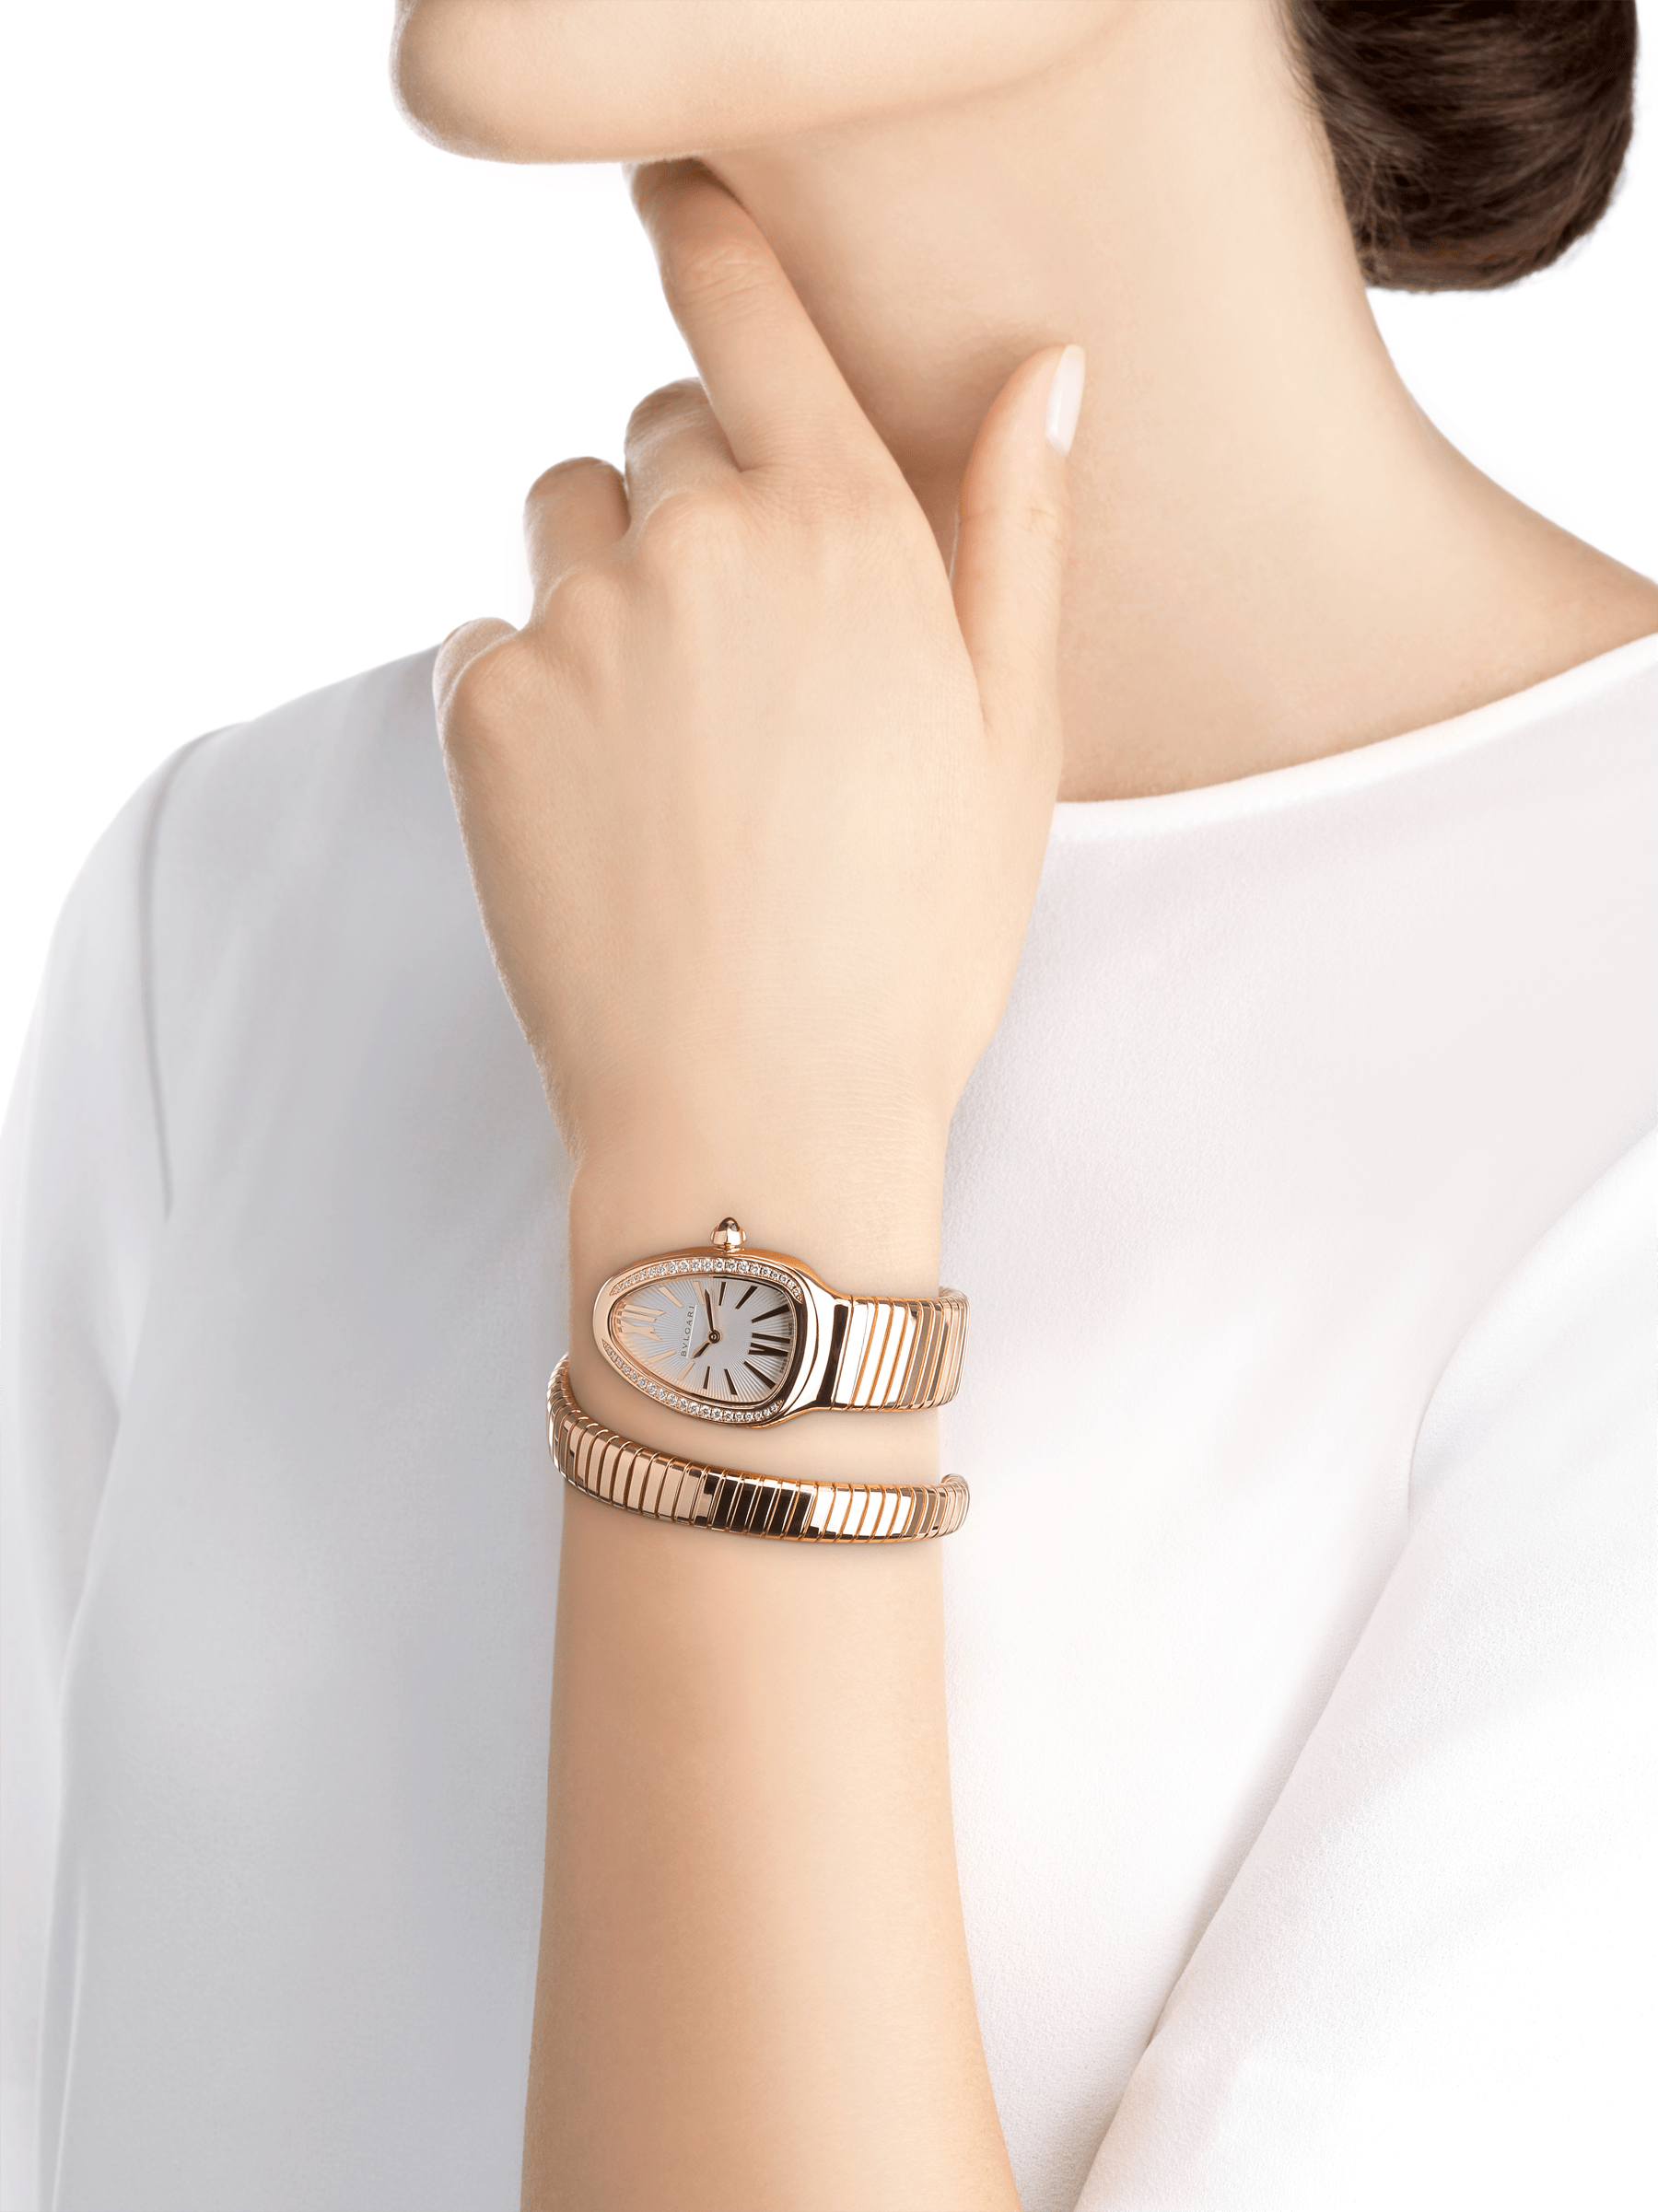 Serpenti Tubogas single spiral watch with 18 kt rose gold case set with brilliant-cut diamonds, silver opaline dial and 18 kt rose gold bracelet 103003 image 4